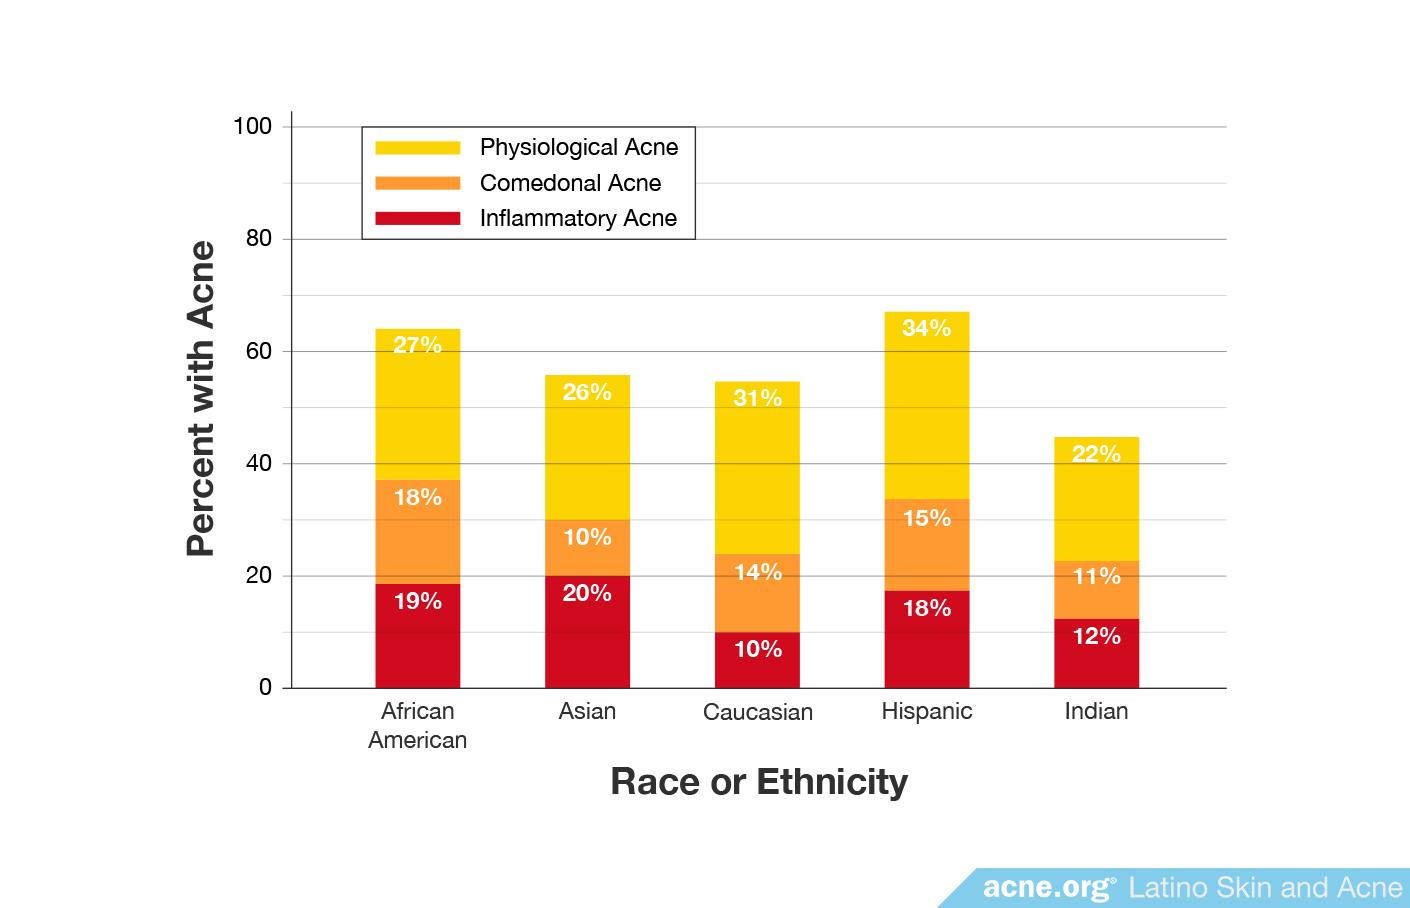 Percentage of Different Types of Acne by Ethnicity